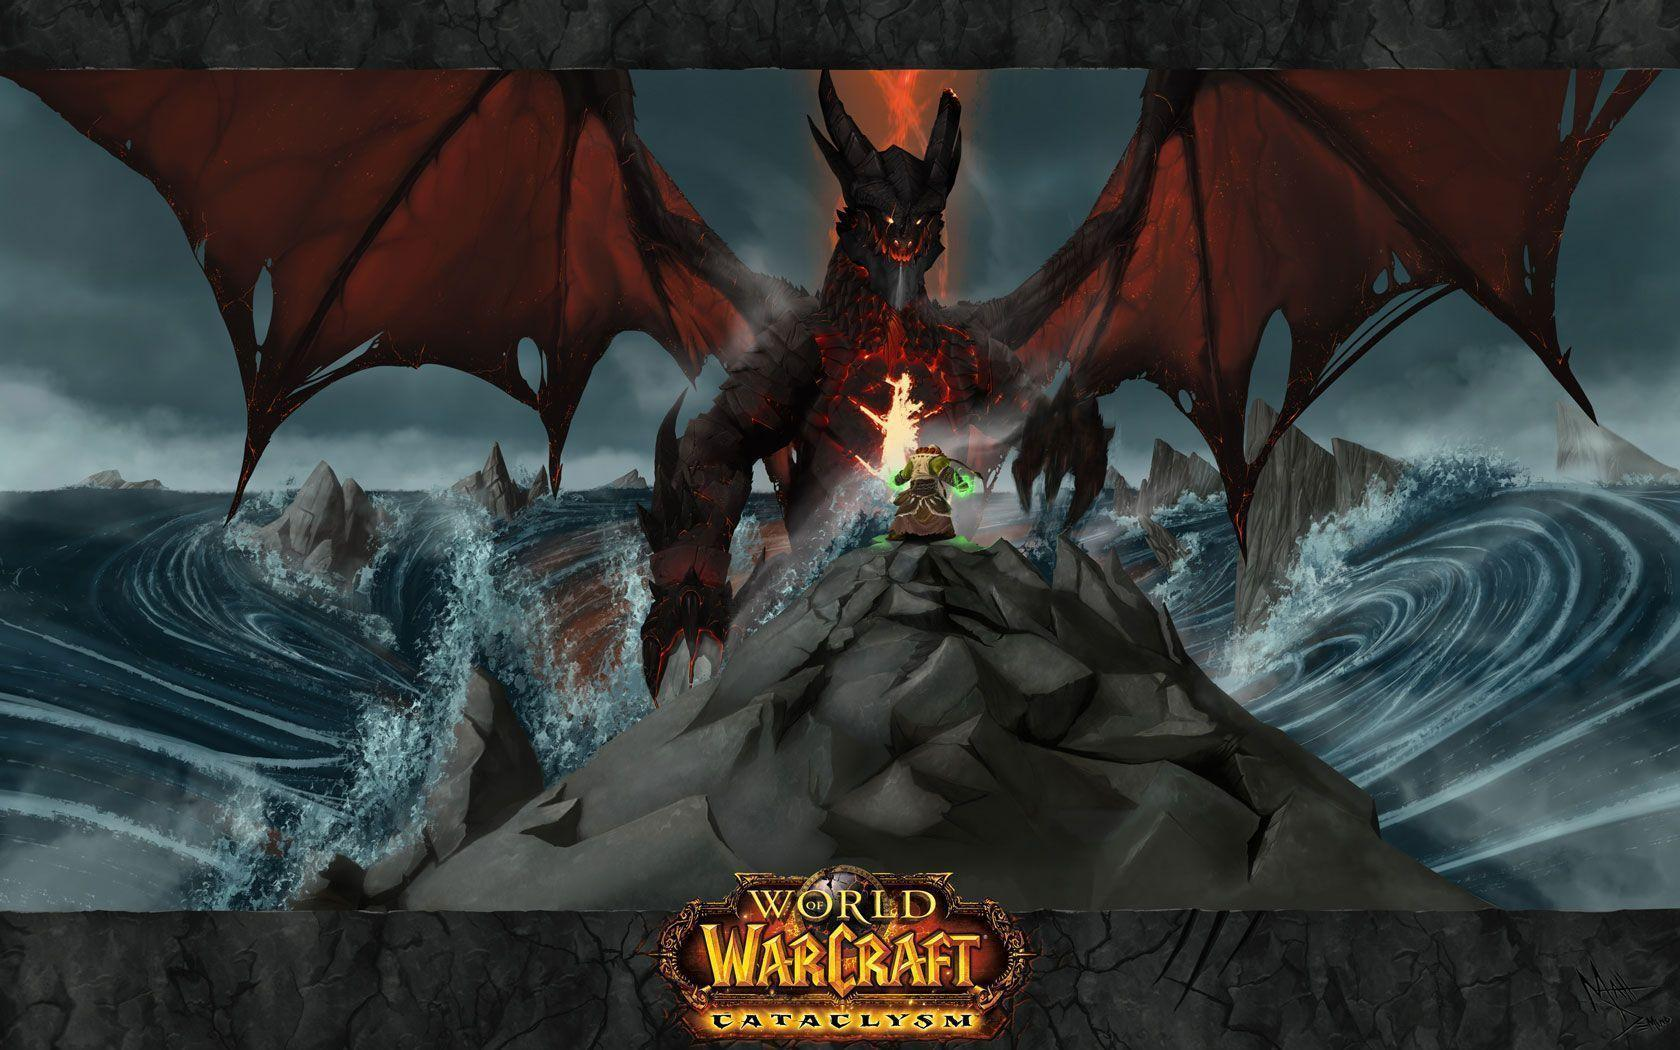 WoW Cataclysm Wallpapers